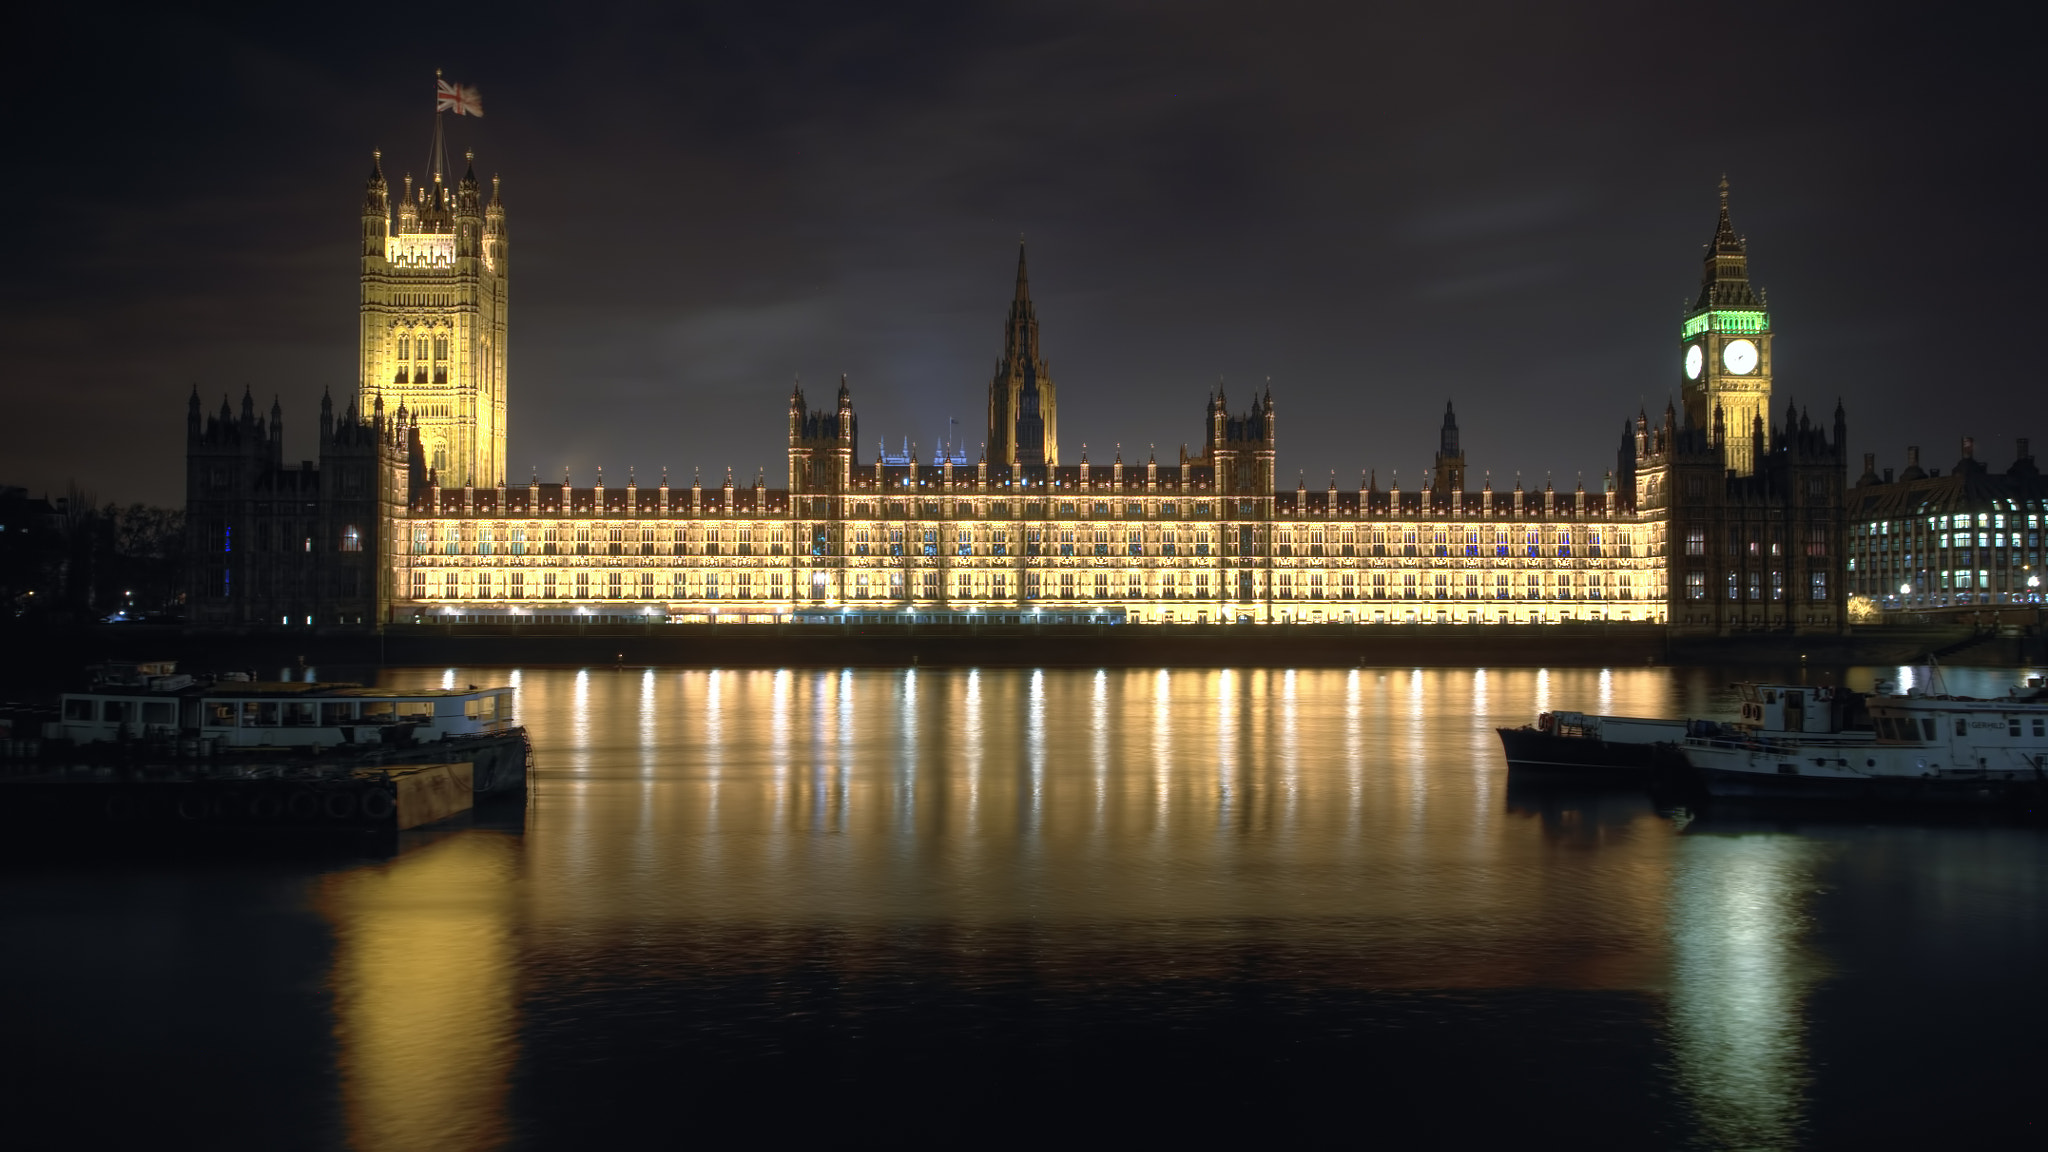 Photograph Houses of Parliament  by Dean Bedding on 500px